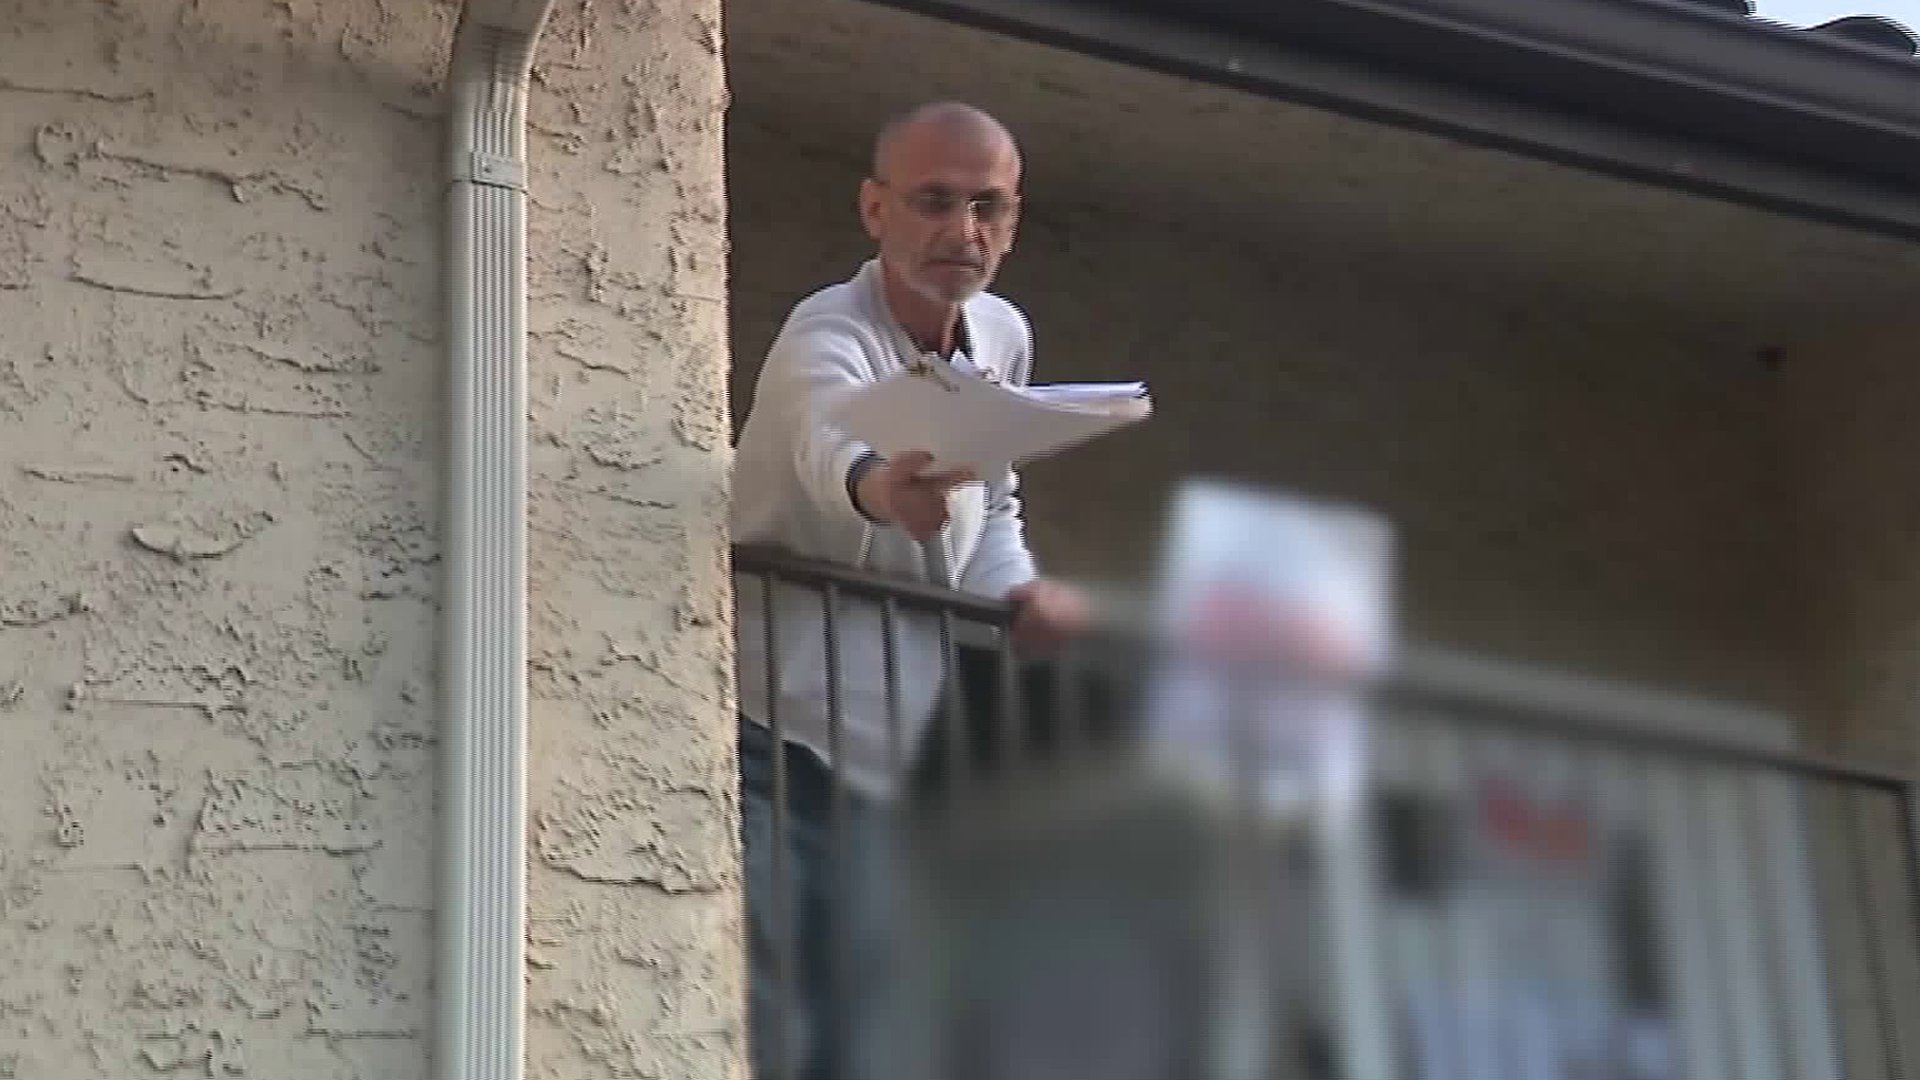 """A man drops papers down to reporters while shouting, """"Call the White House,"""" on Jan. 15, 2020. (Credit: KTLA)"""